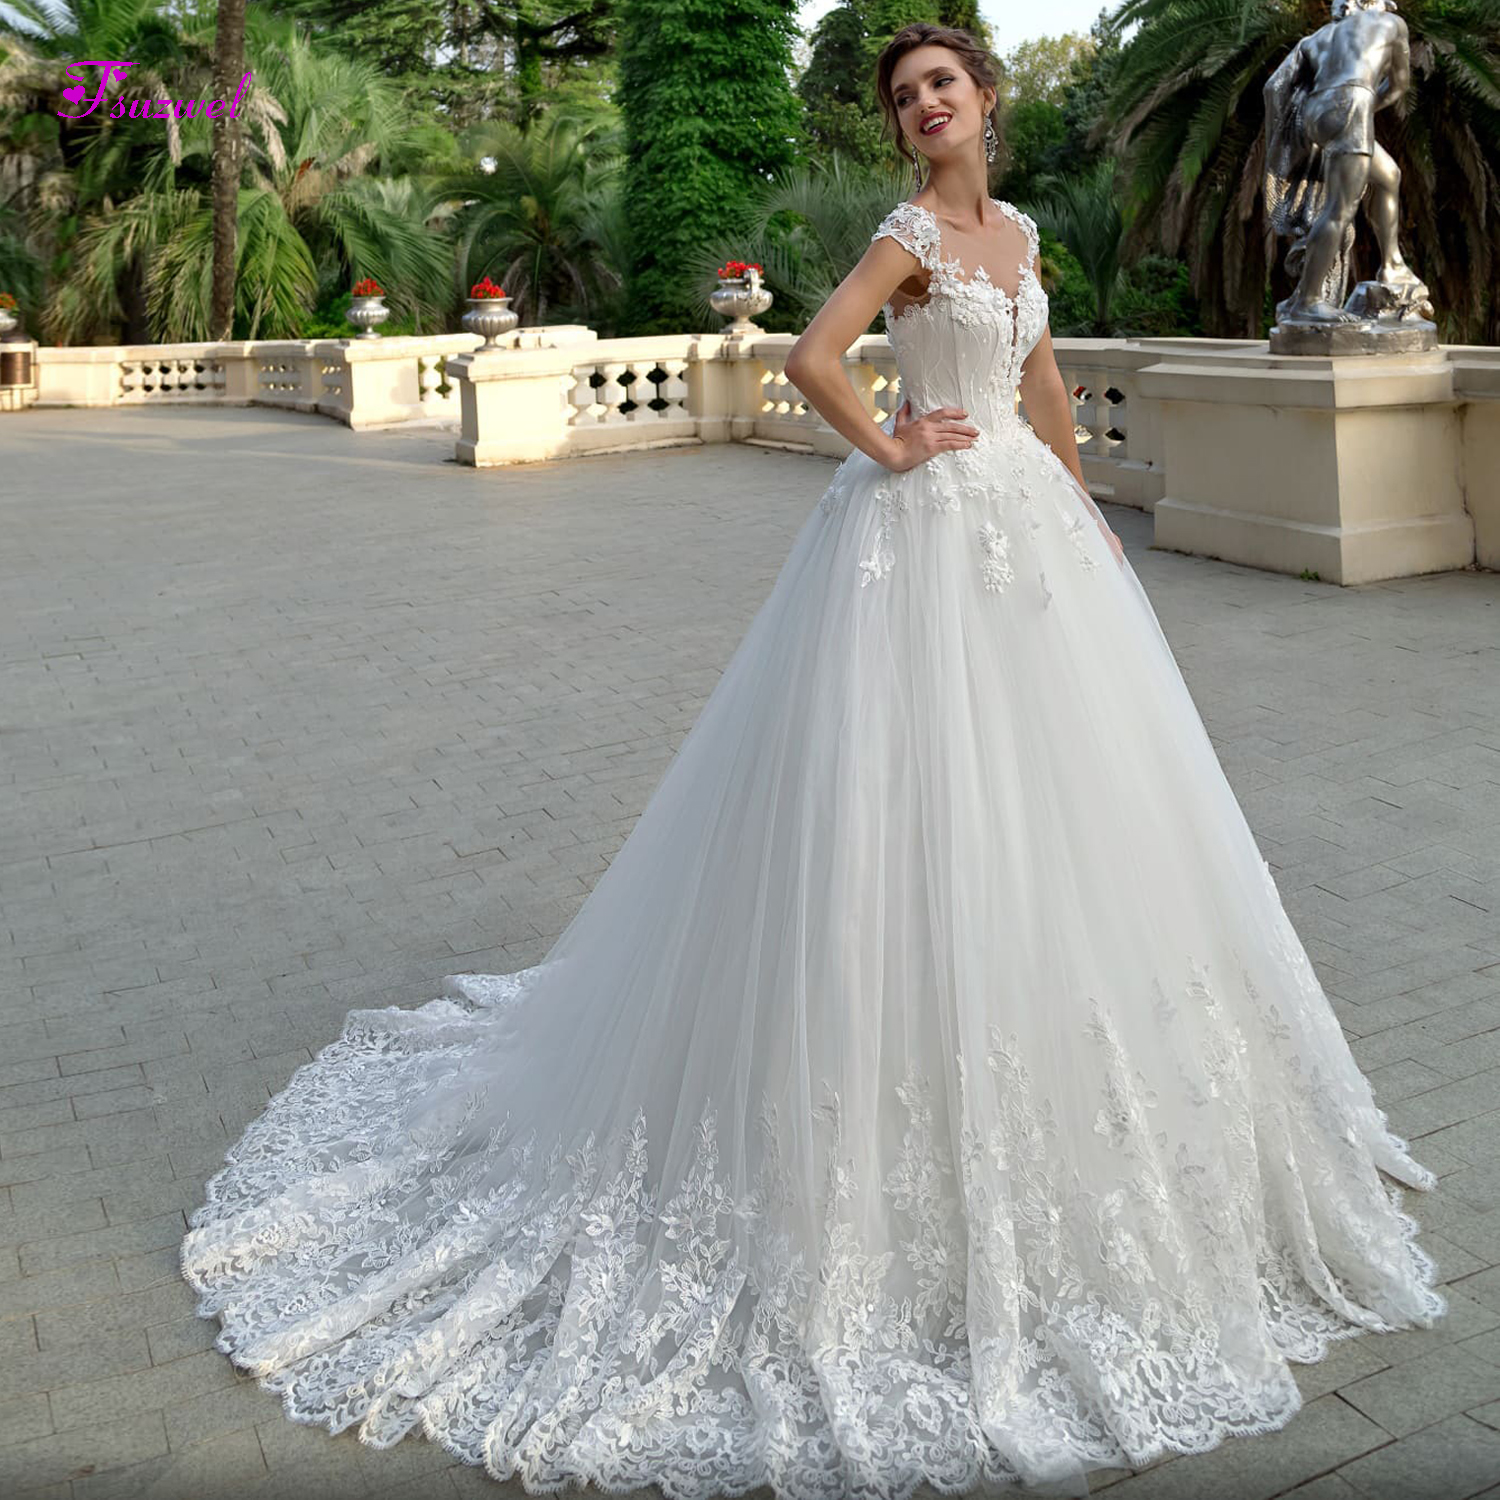 A Line Wedding Dresses With Cap Sleeves: Fsuzwel New Arrival O Neck Appliques Cap Sleeves A Line